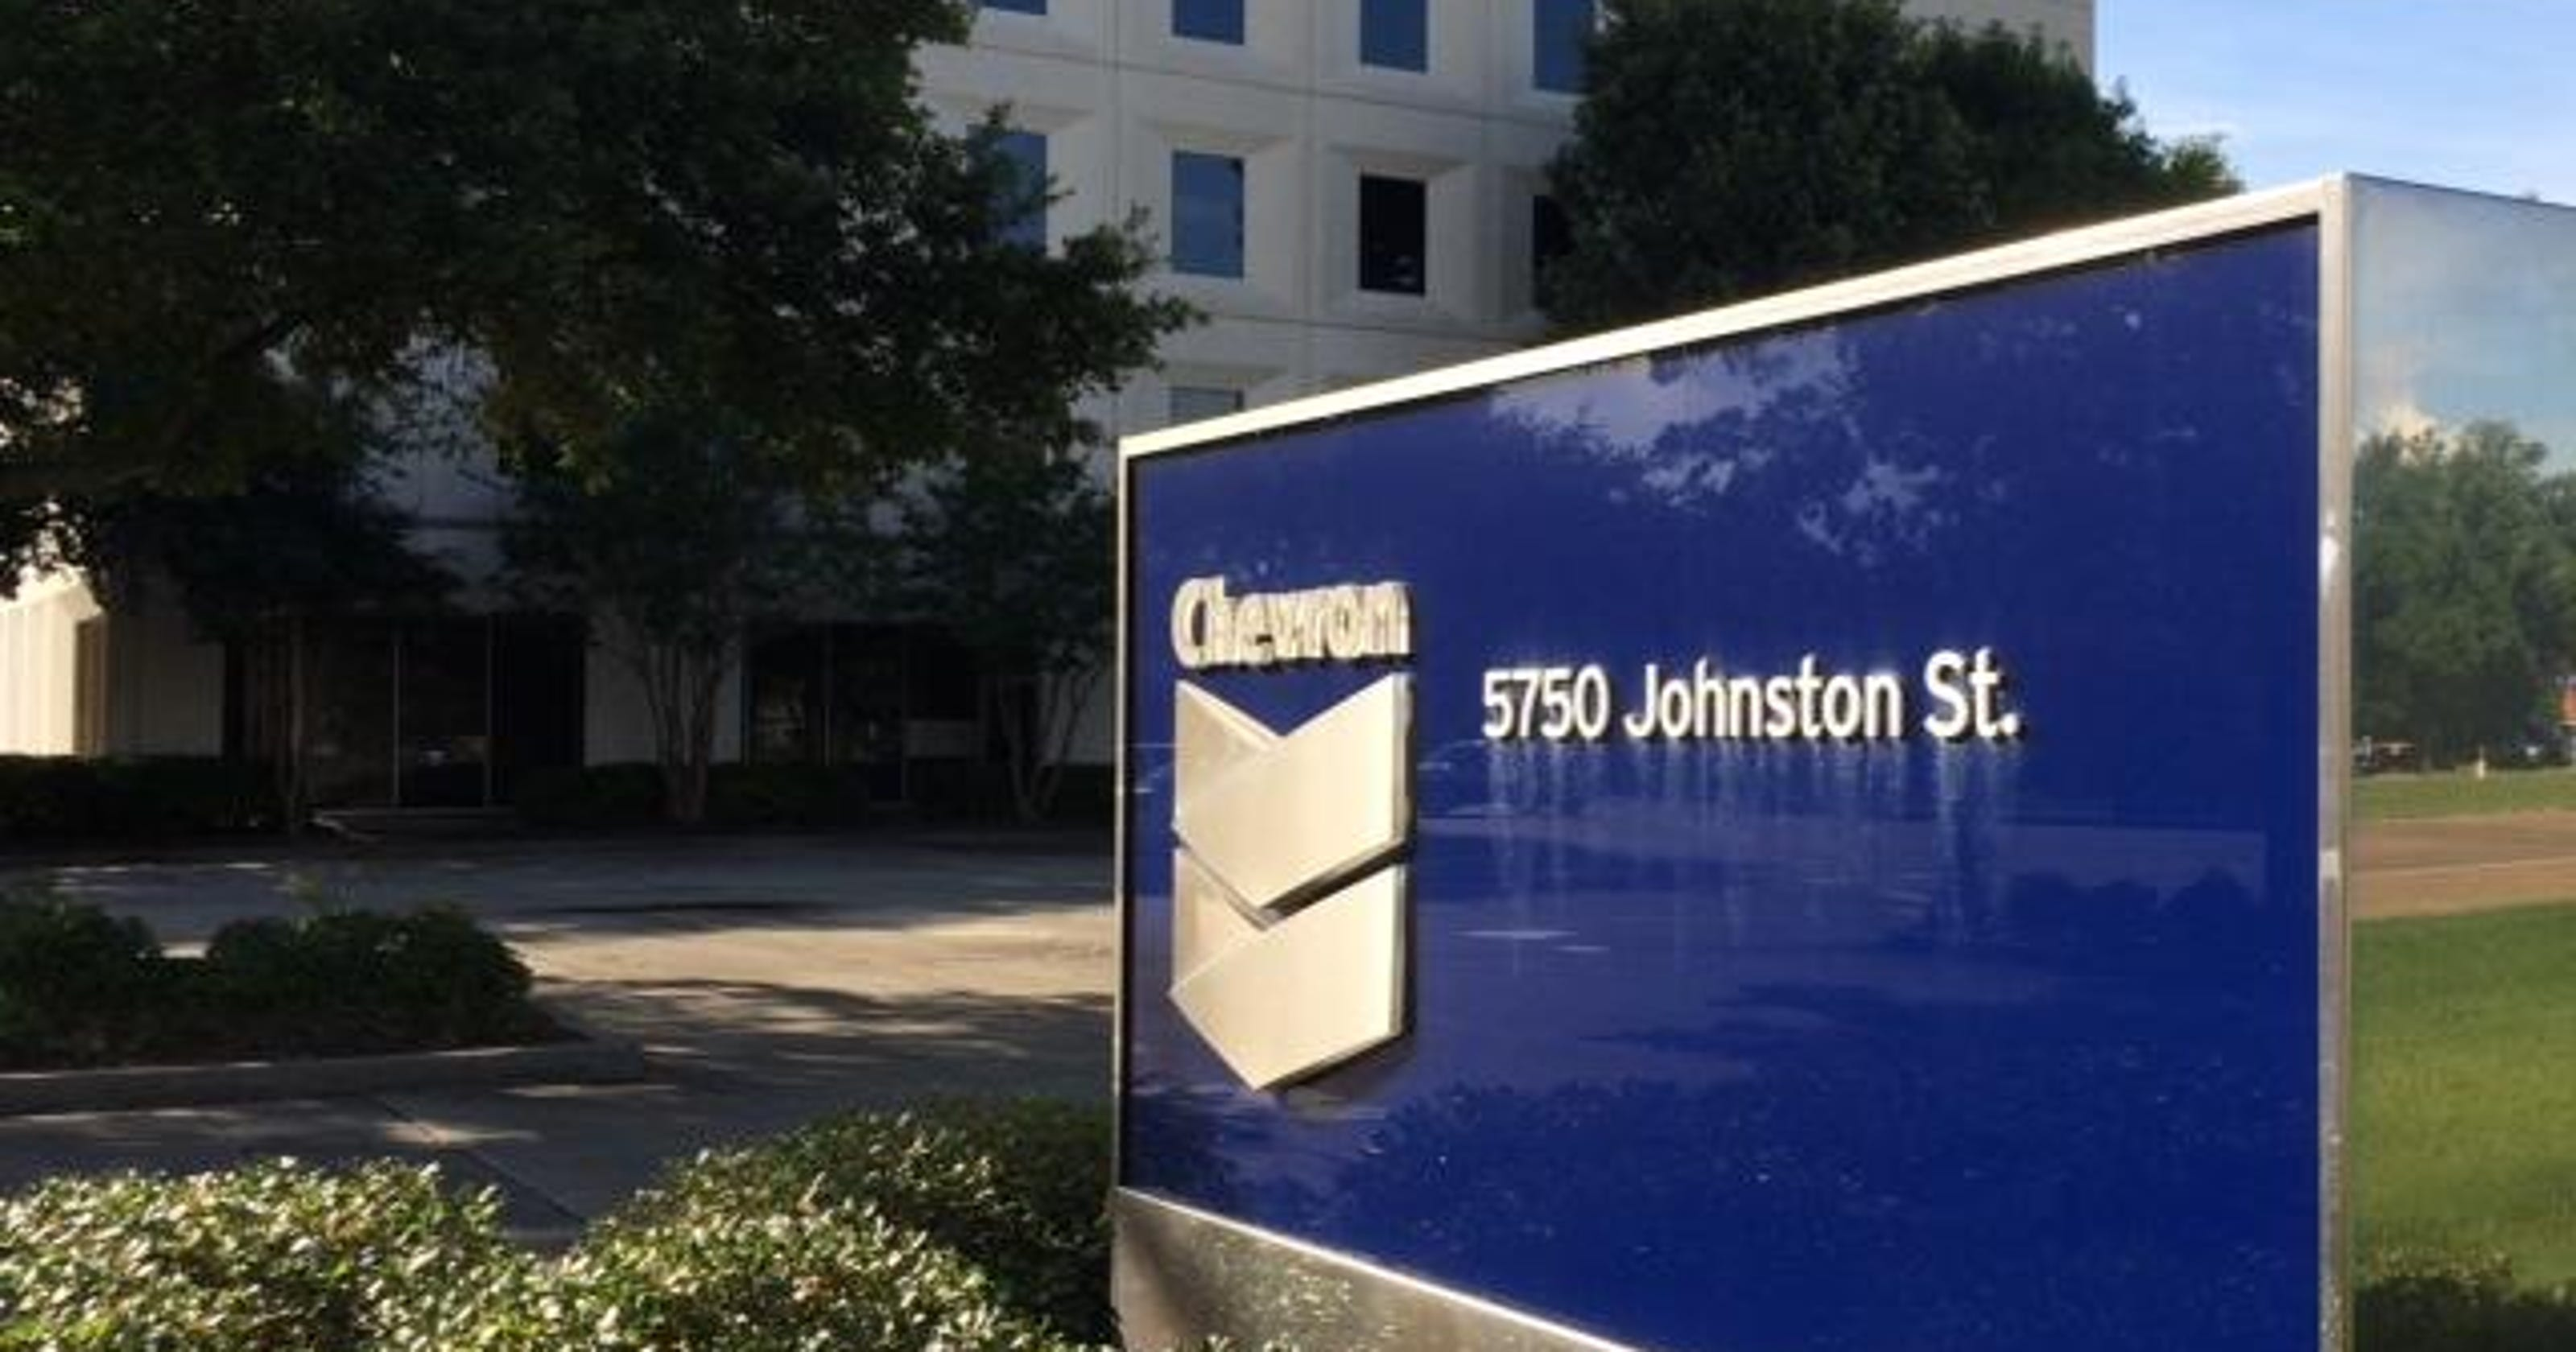 Chevron confirms it will close Johnston St  office